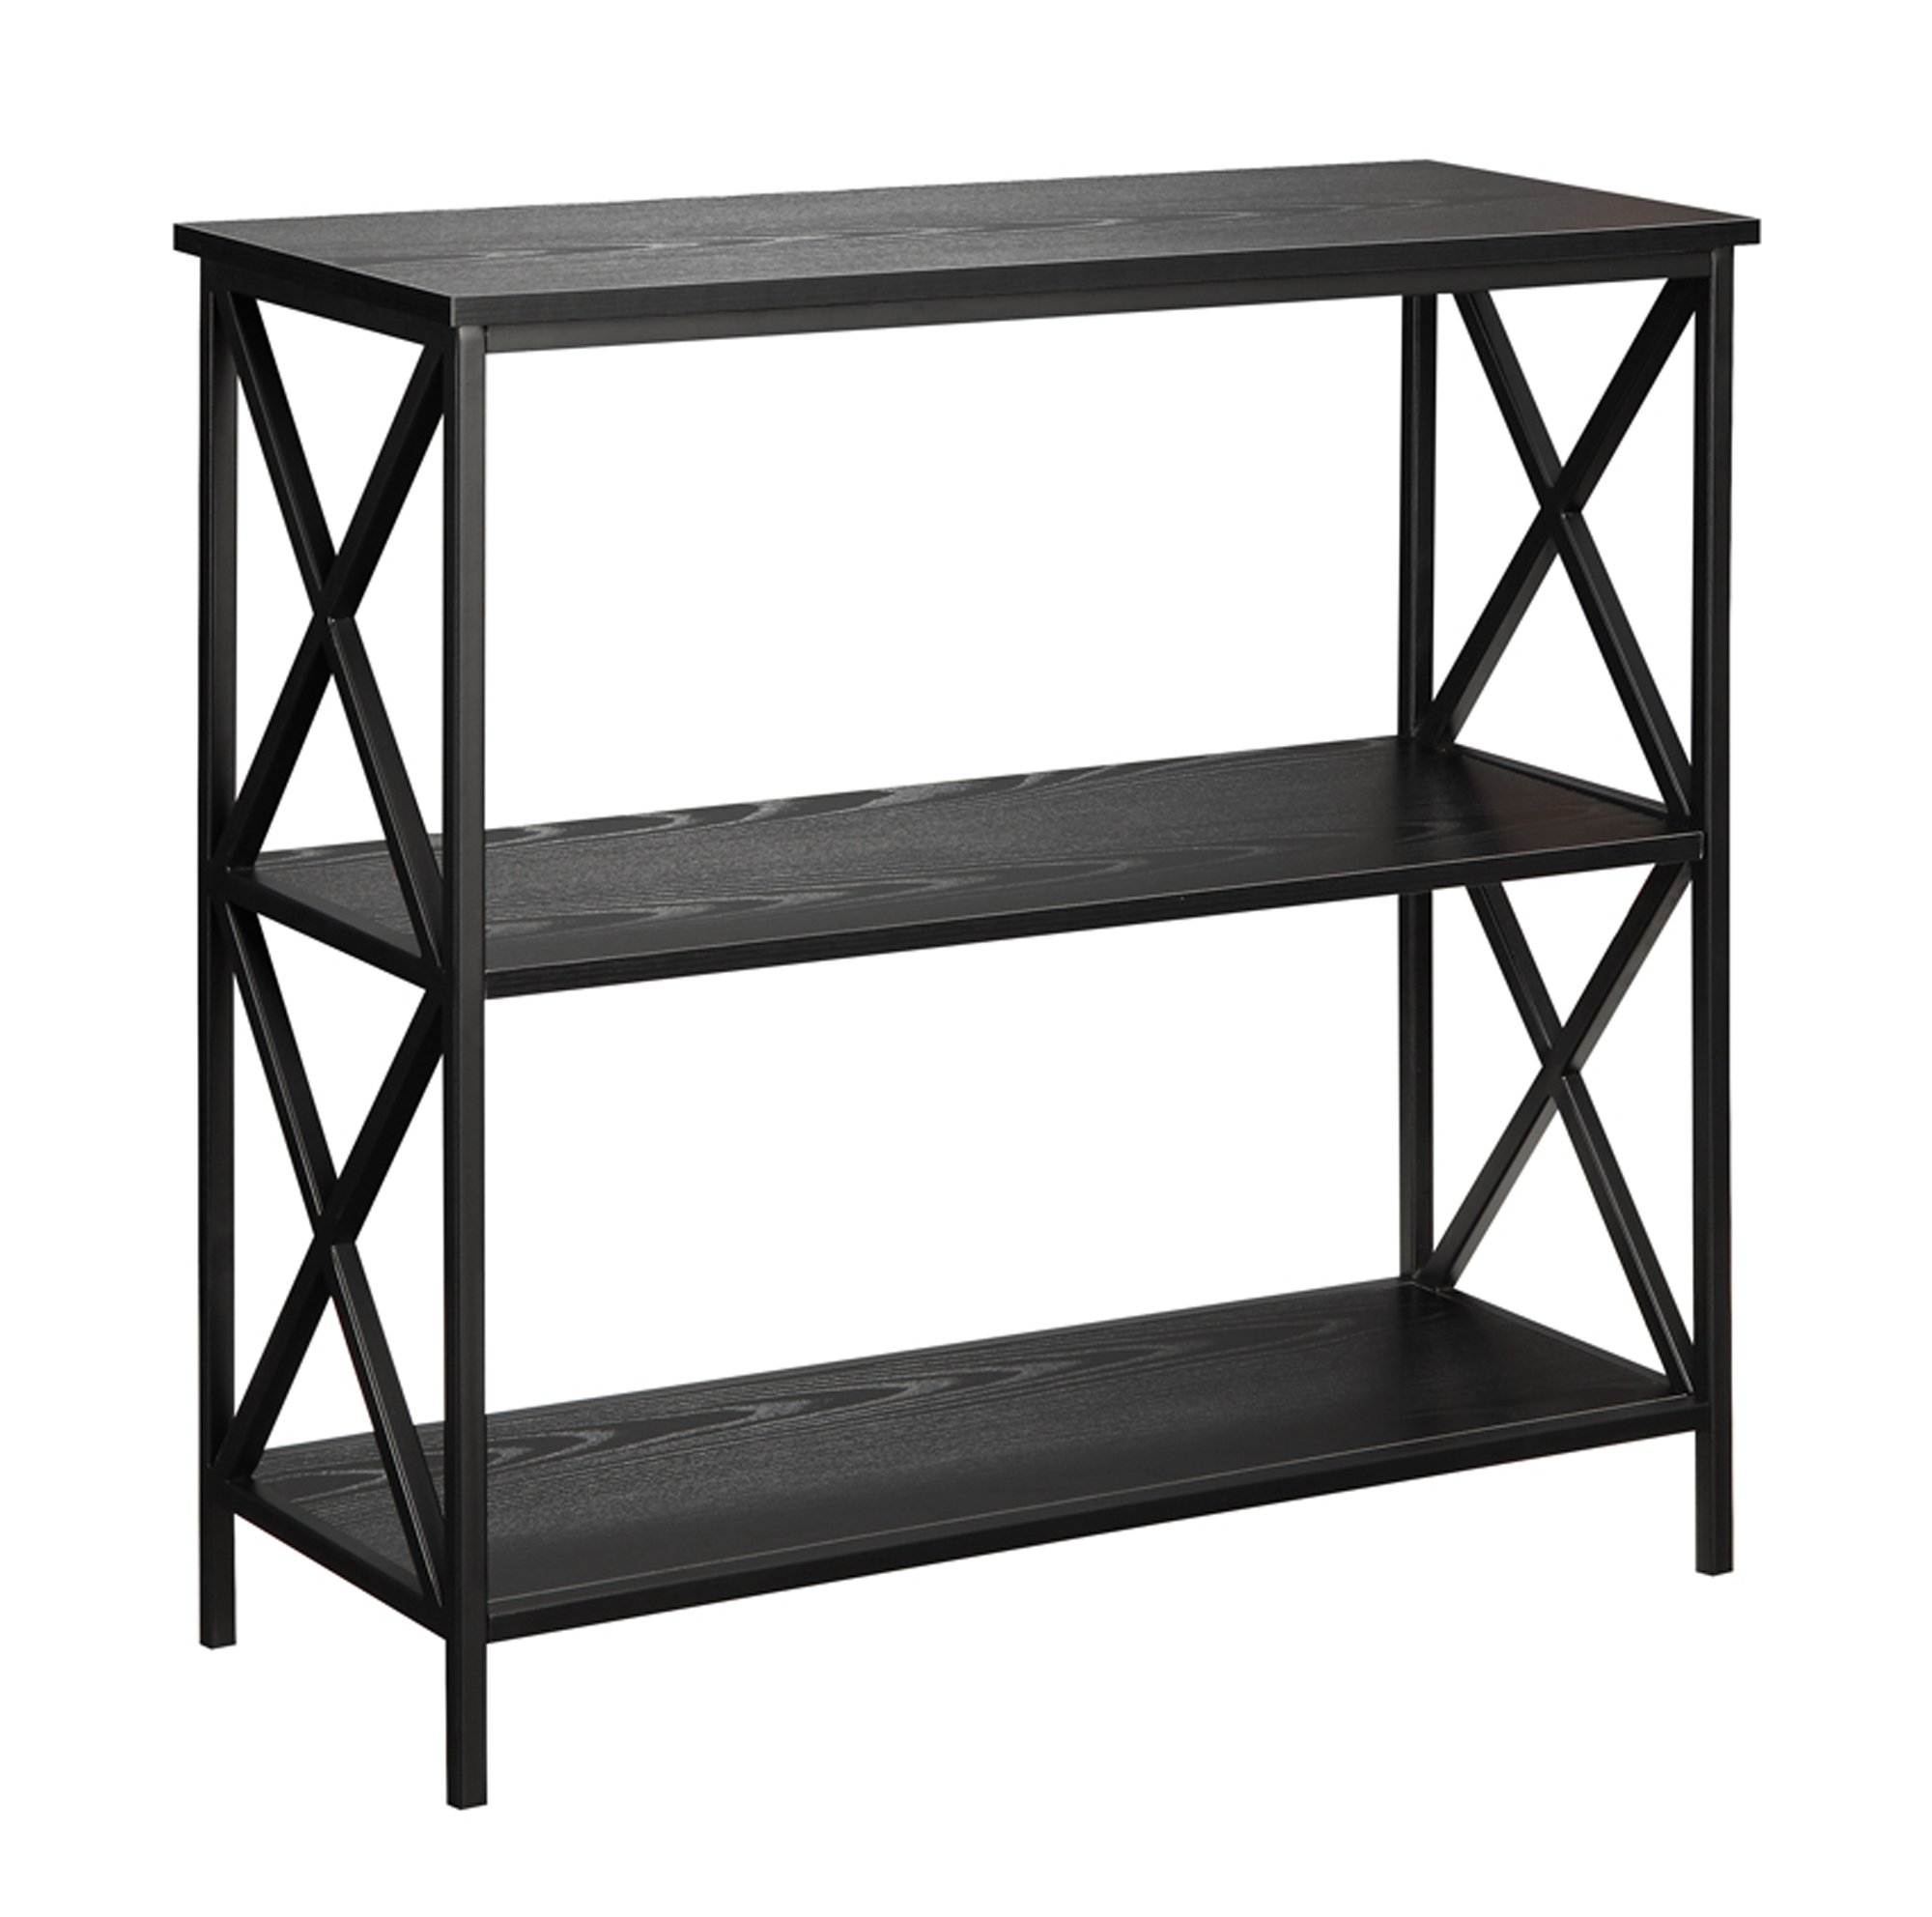 Convenience Concepts Tucson 3-Tier Bookcase, Black - Tucson Collection Powder coated metal X-frame Available in multiple finishes - living-room-furniture, living-room, bookcases-bookshelves - 71s2V9JEFIL -